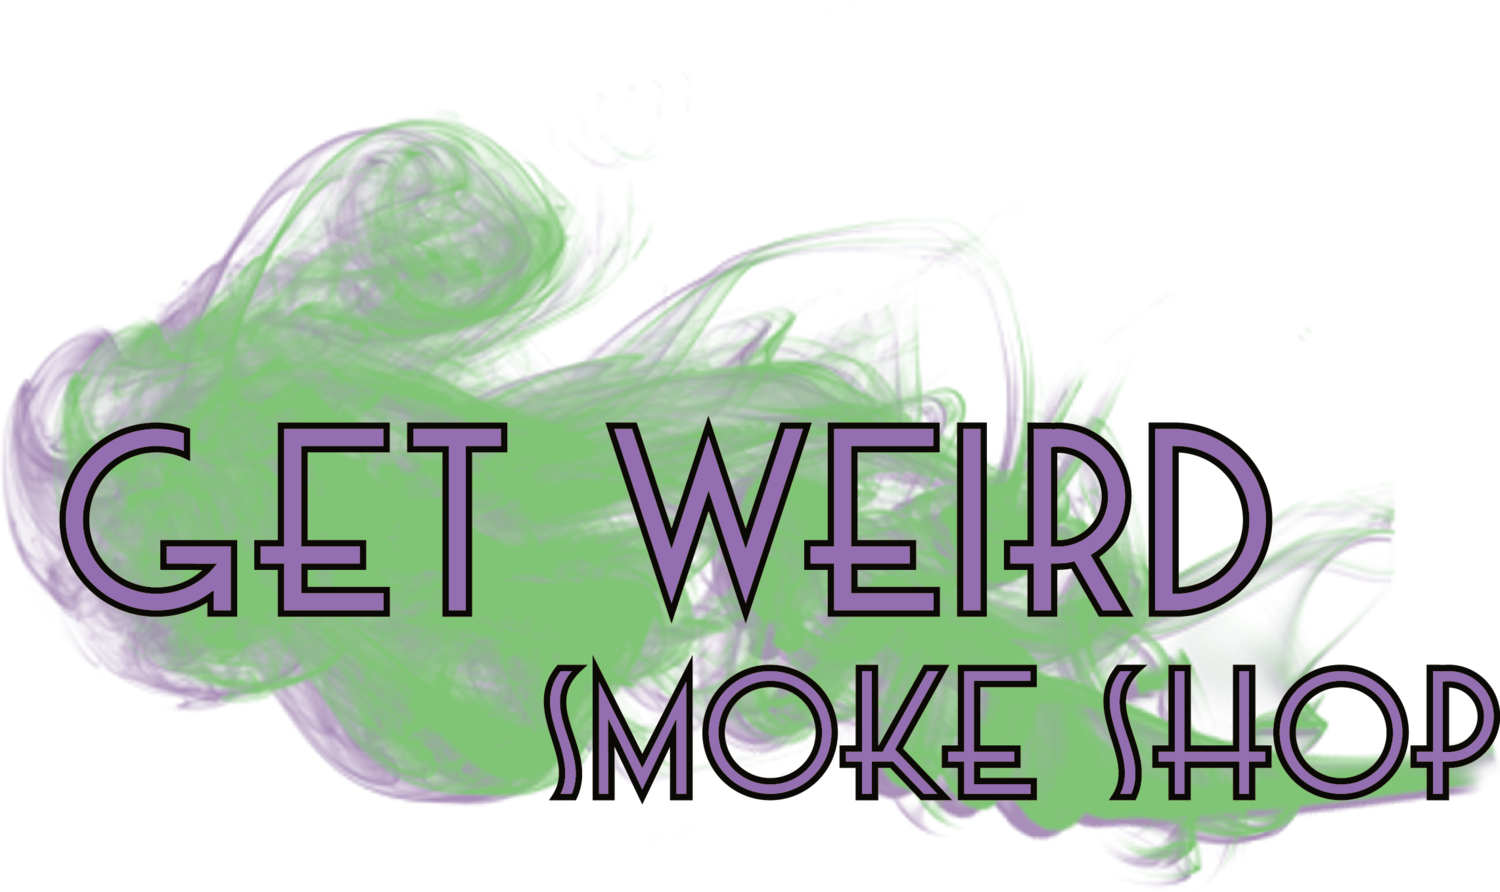 Get Weird Smoke Shop